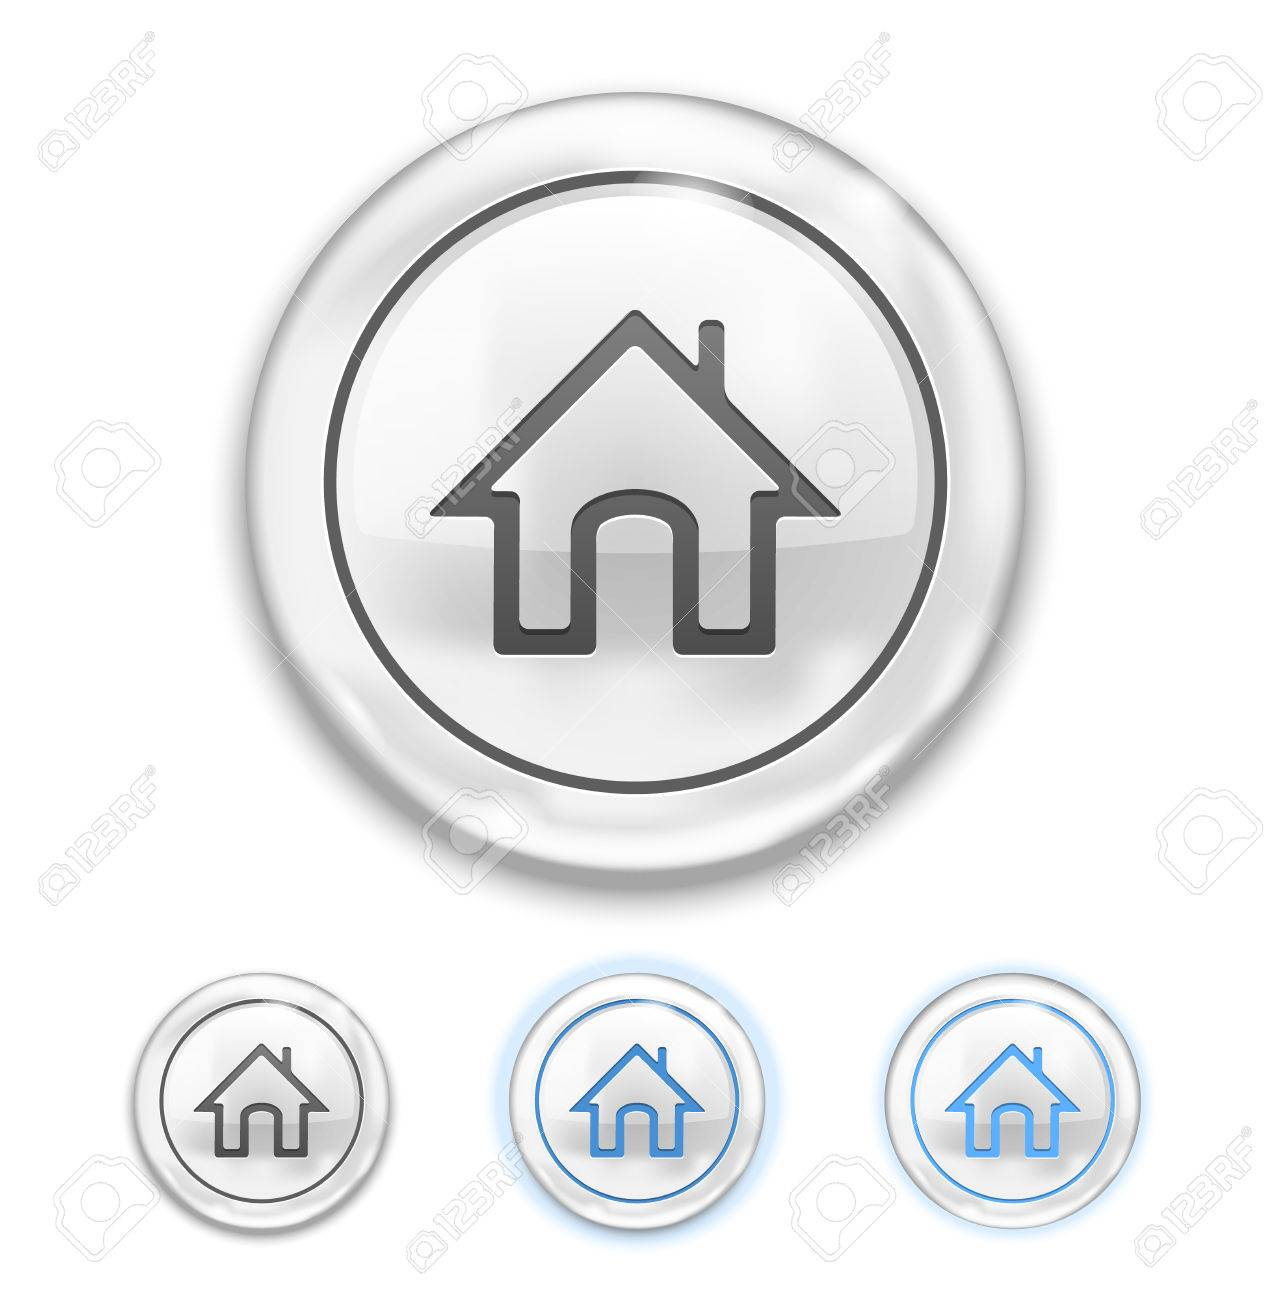 Home Icon on Button normal, hover, pressed Stock Vector - 22787249